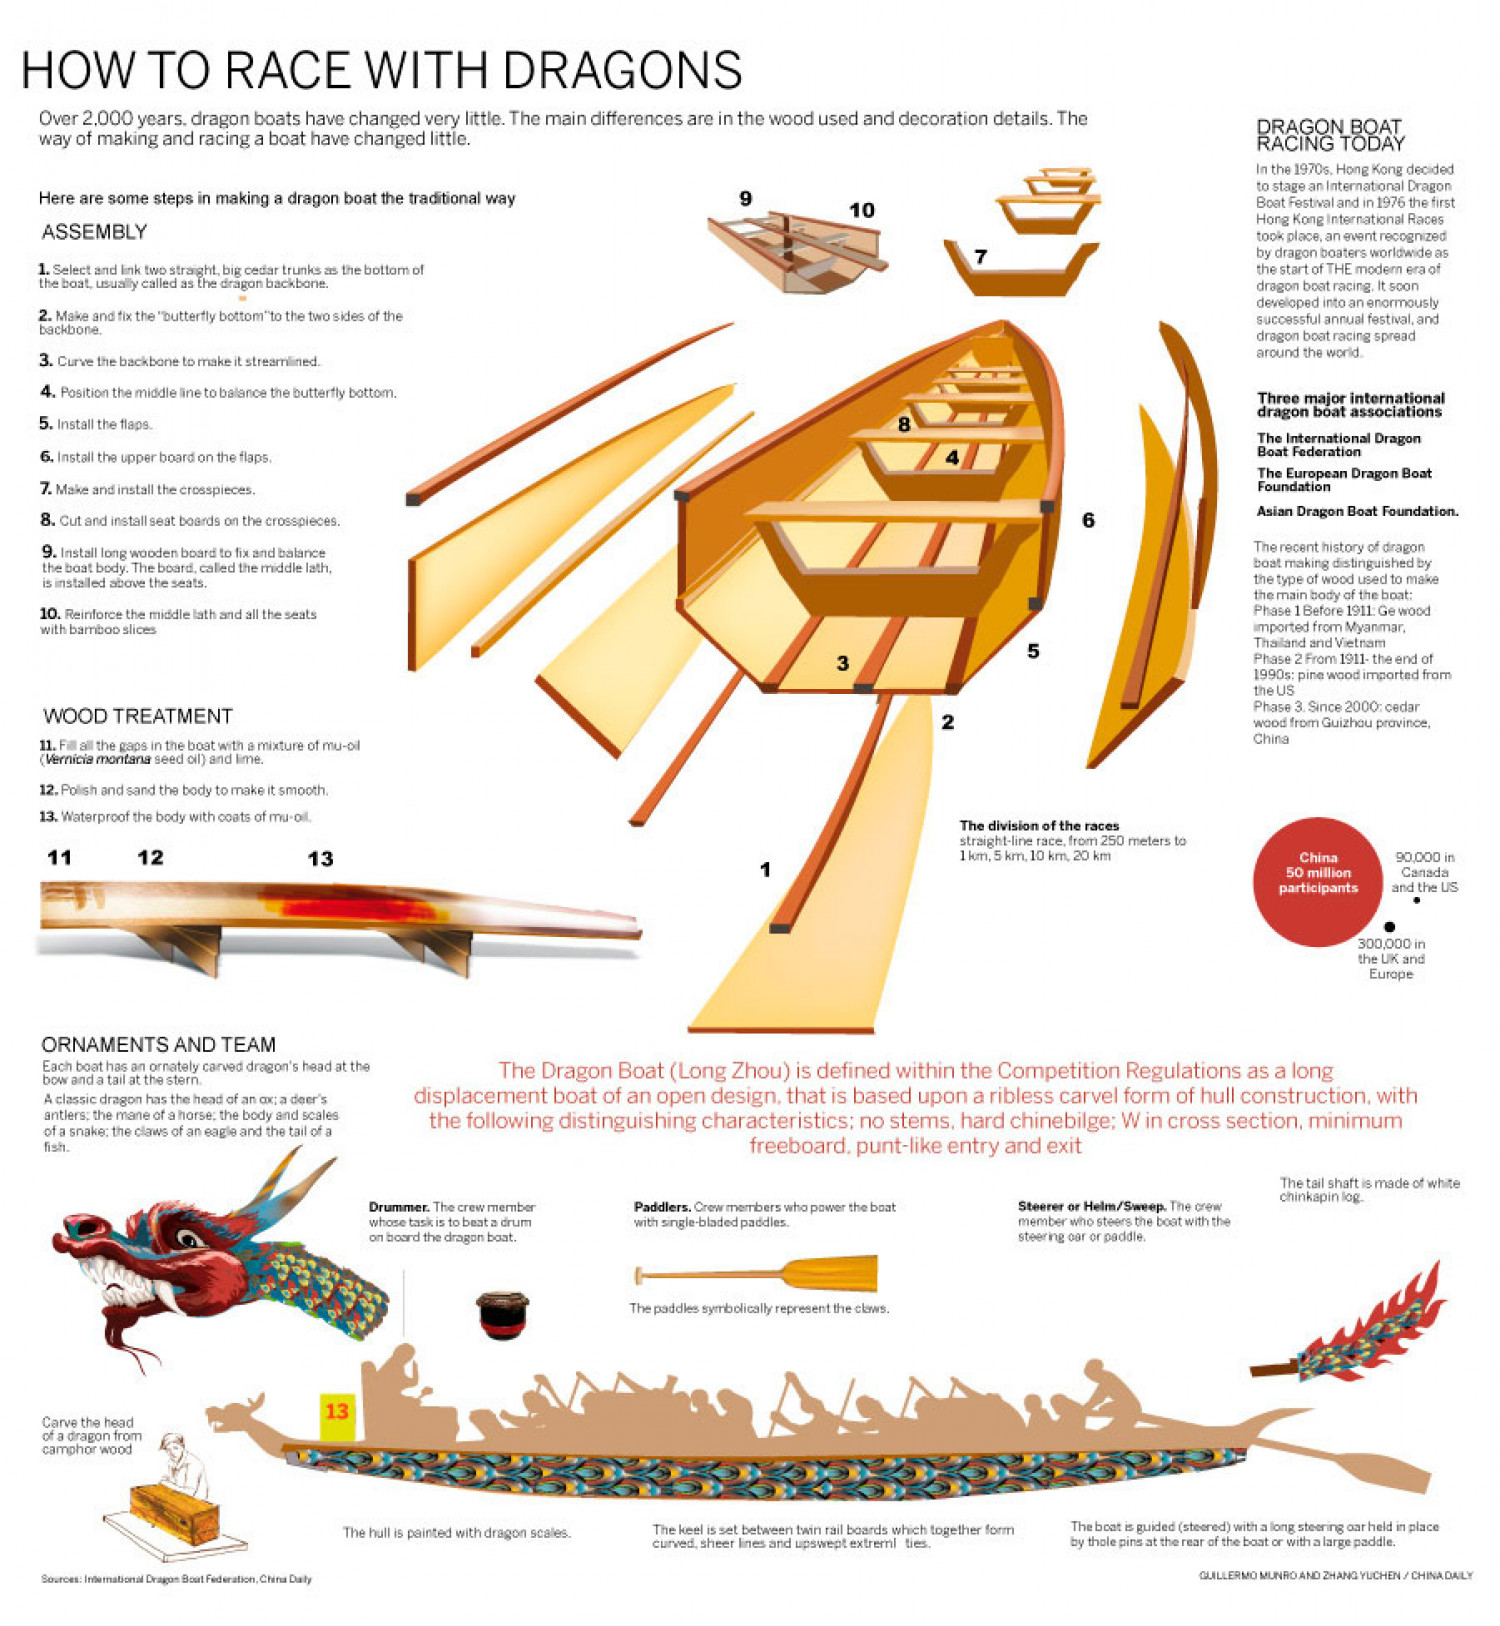 How to race with a dragon Infographic